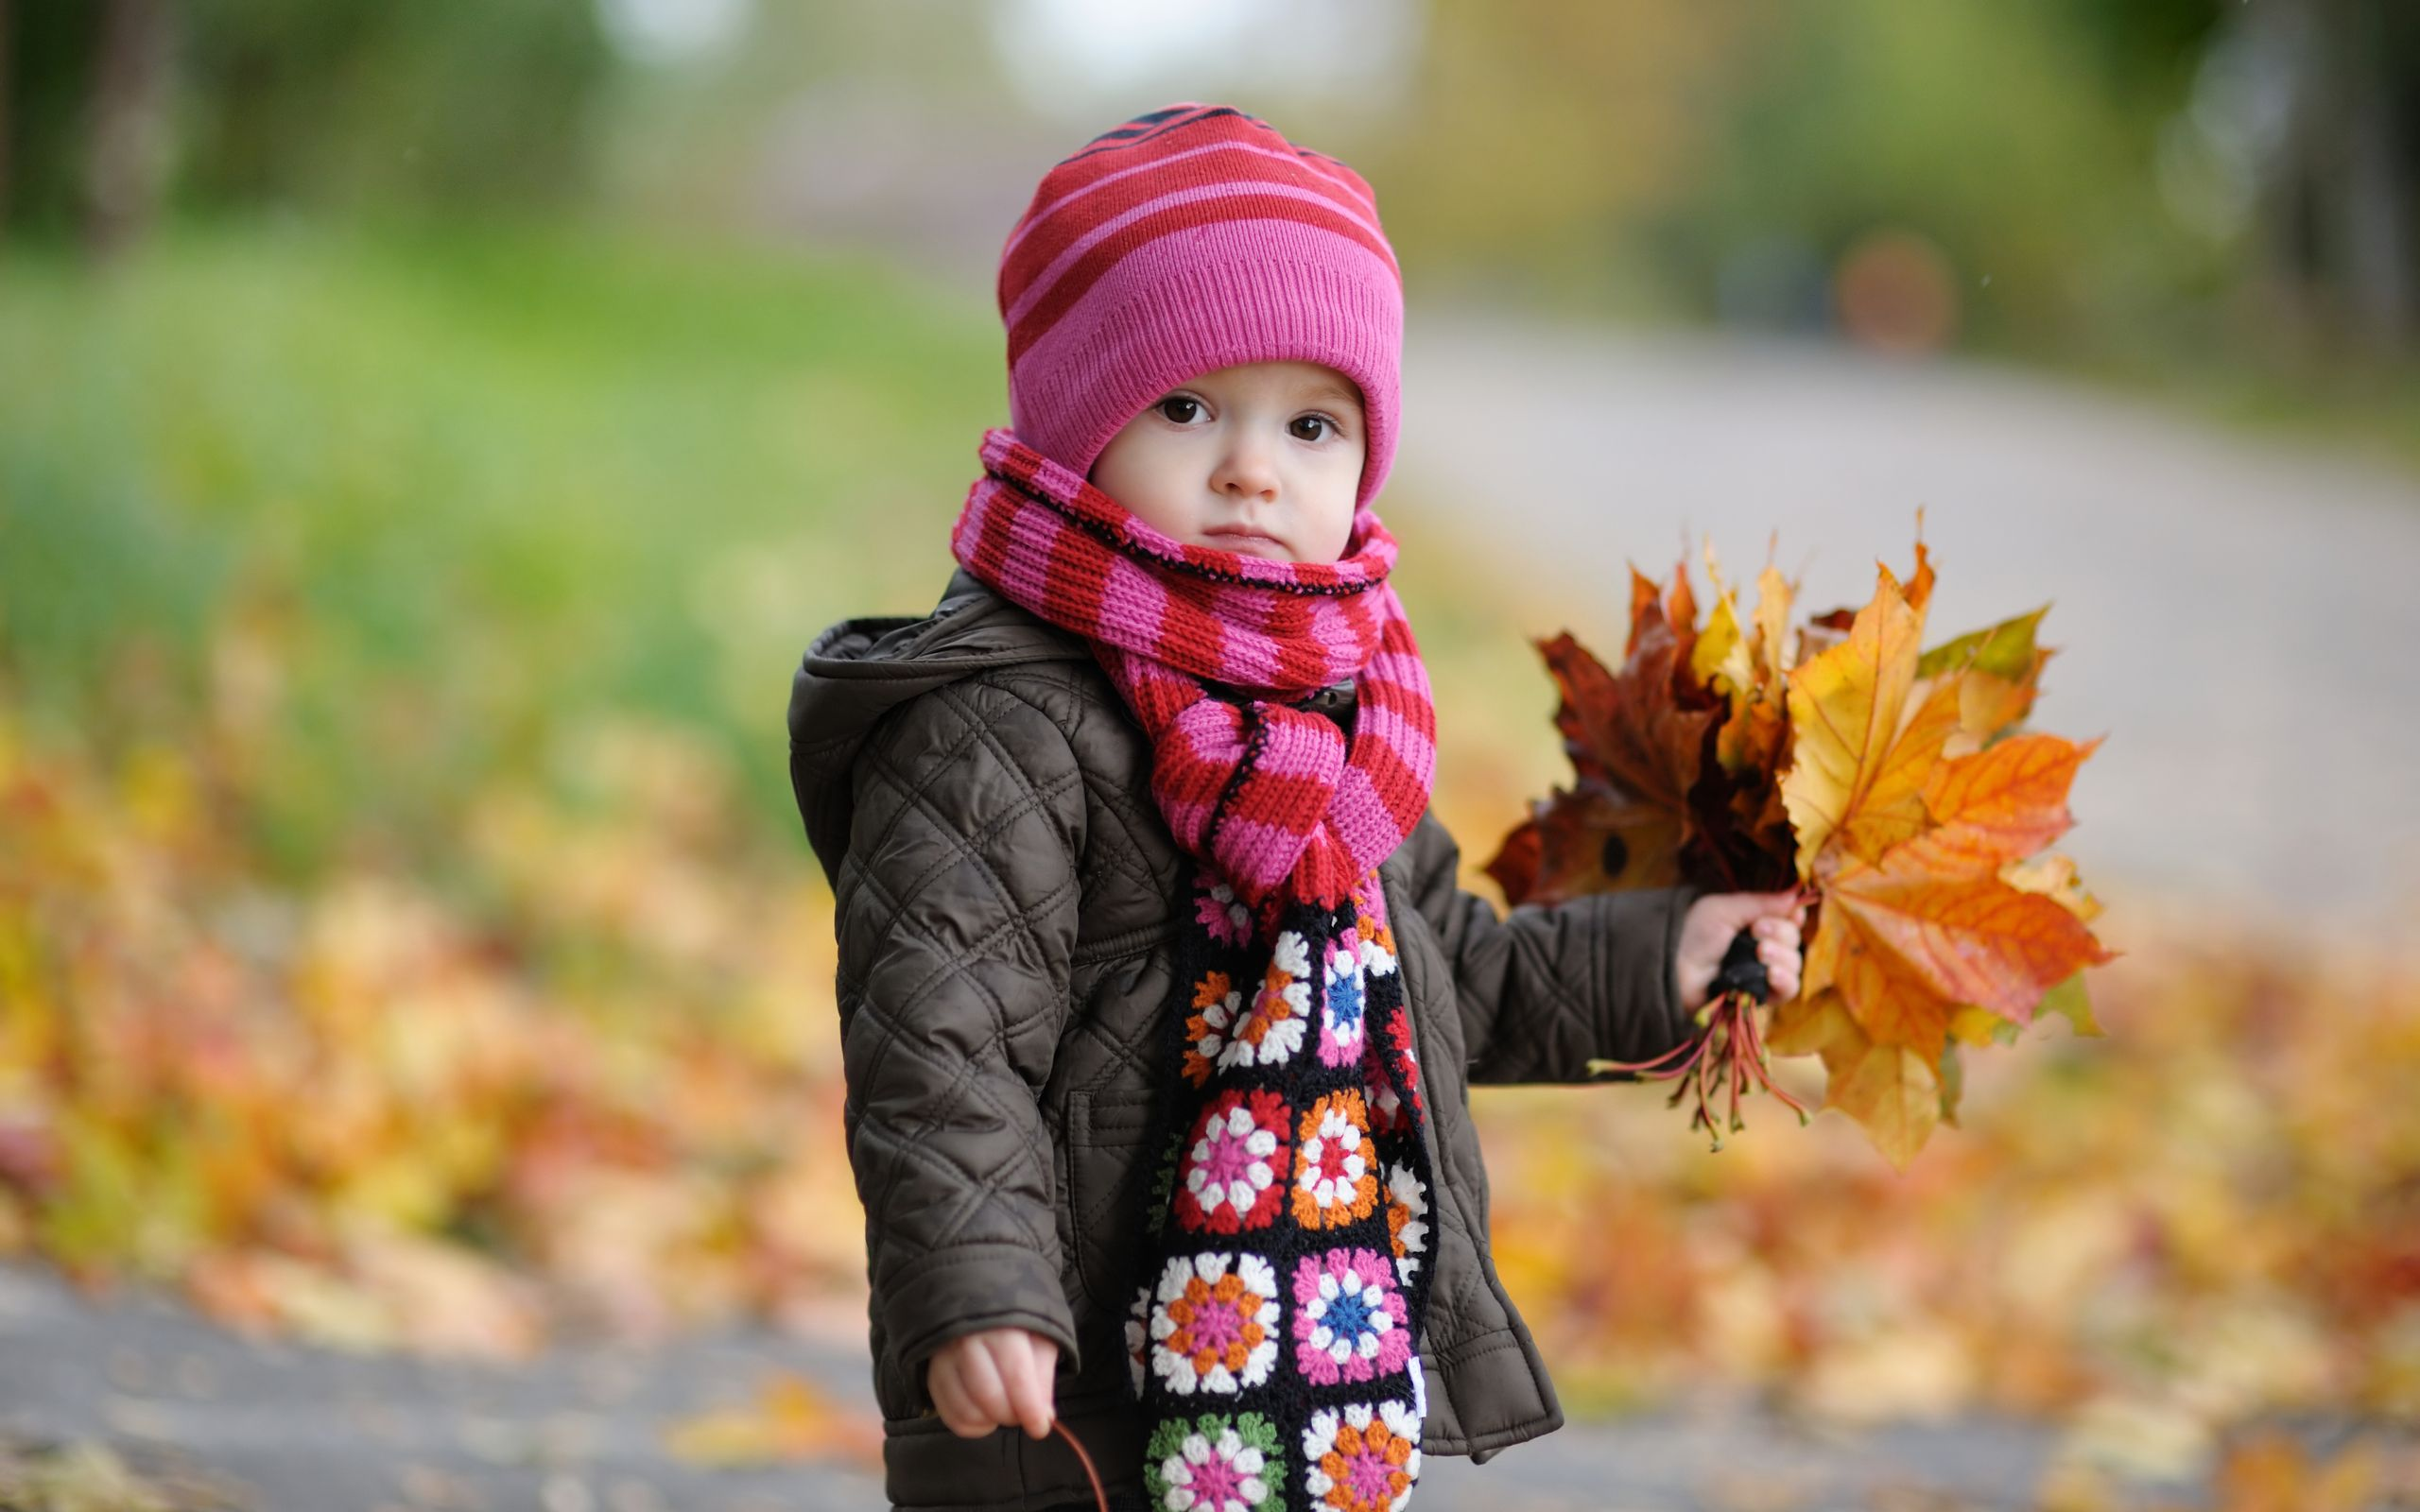 Cool Cute Baby In Autumnwide Cute Pinterest Autumn Leaves